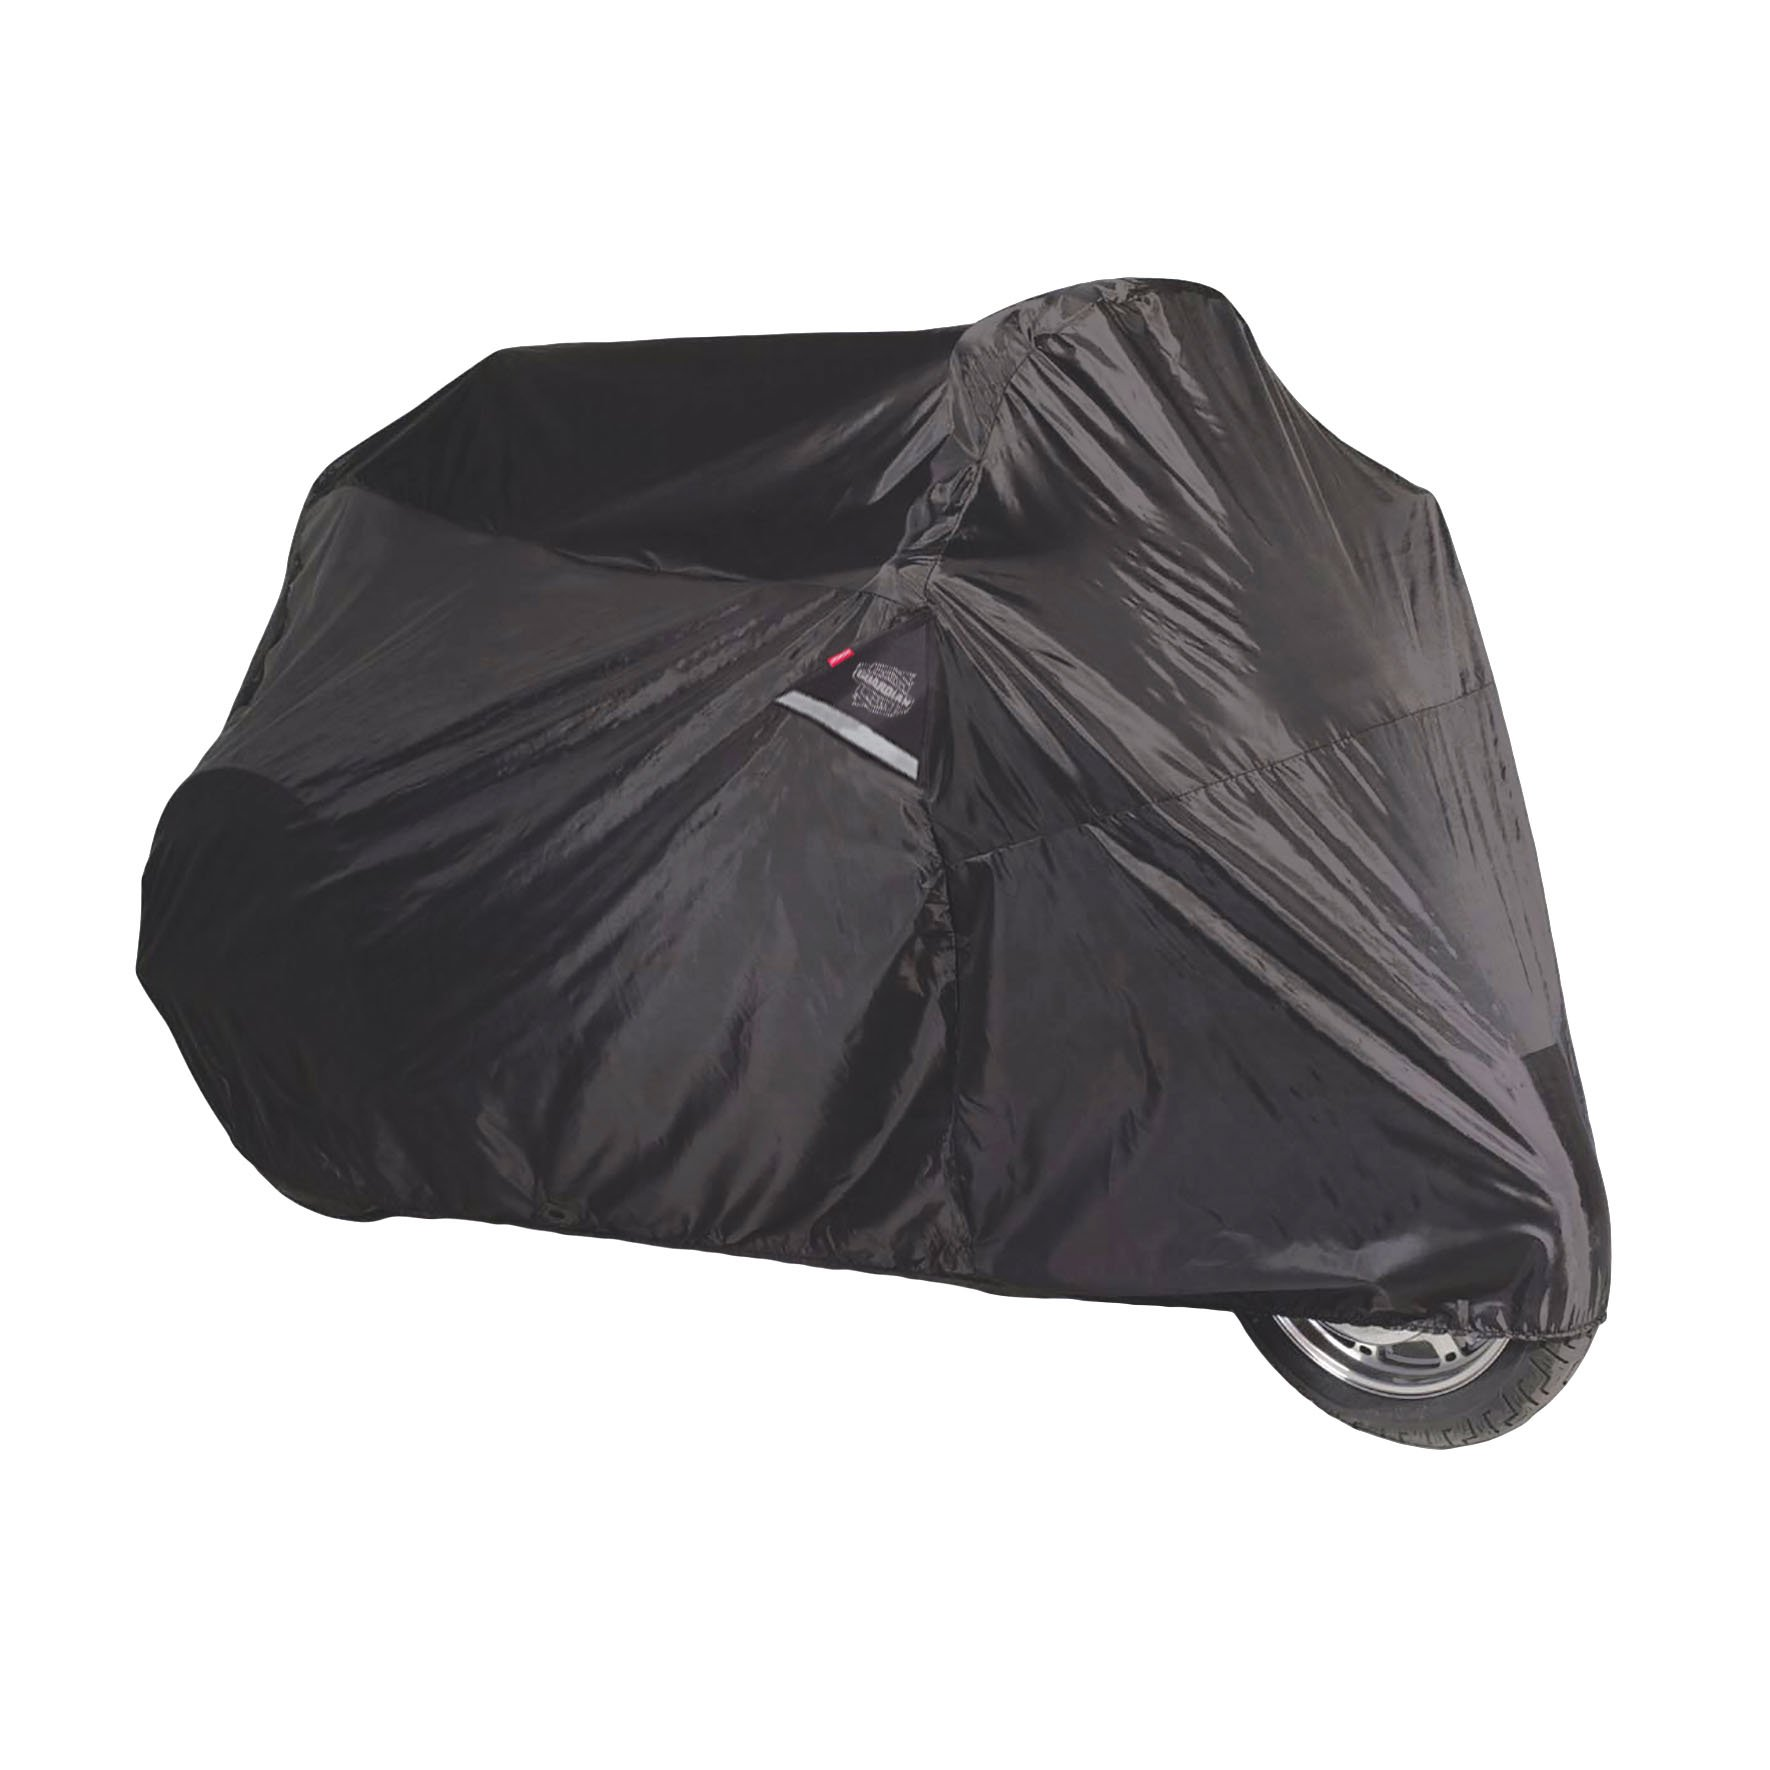 Dowco Guardian 51060-00 WeatherAll Plus Indoor/Outdoor Waterproof Motorcycle Cover: Black, XXX-Large Trike